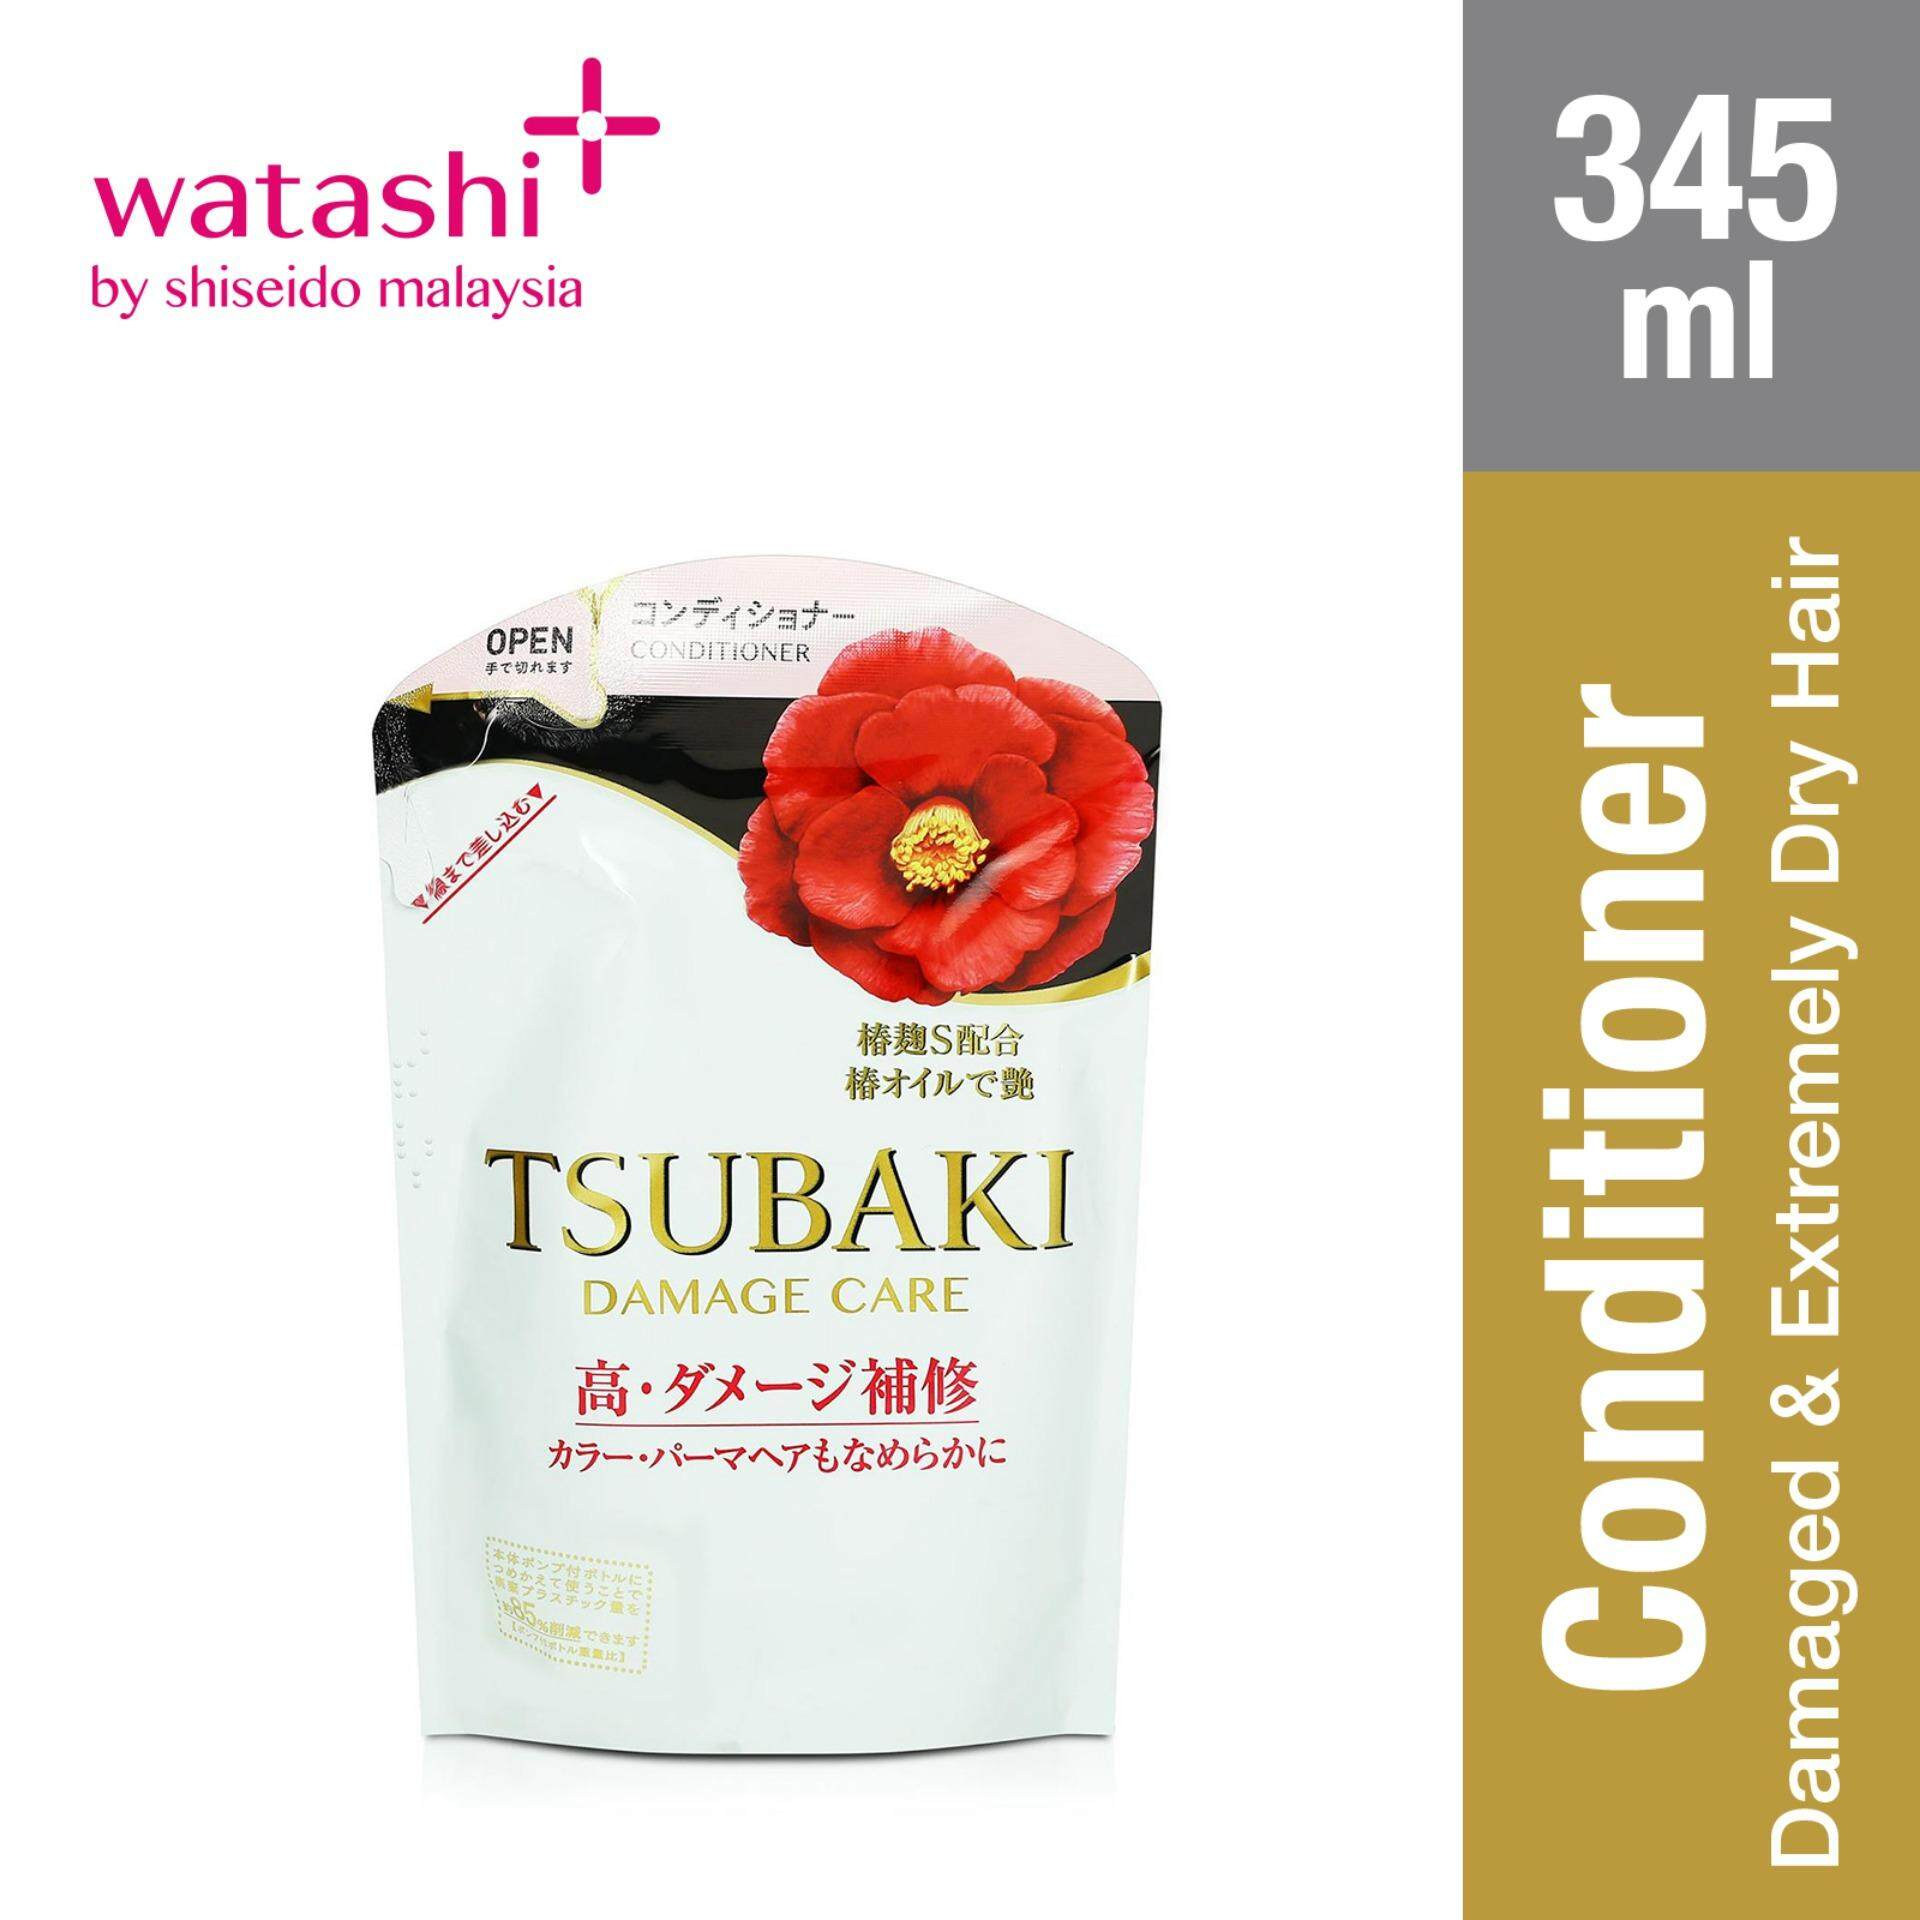 Tsubaki Damage Care Conditioner Refill Pack 345ml By Jbeauty By Shiseido.